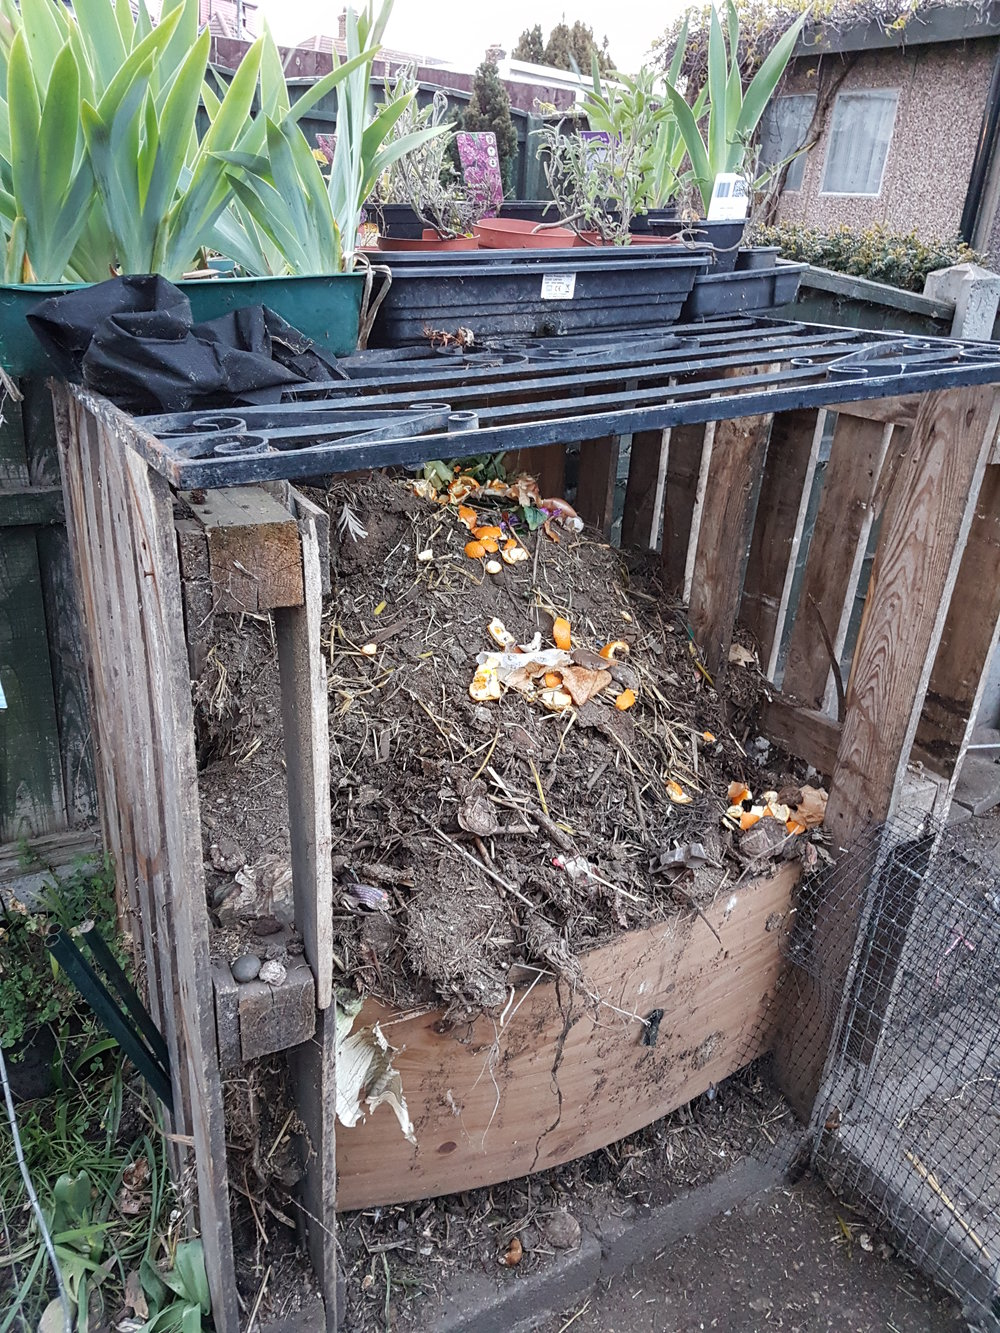 A rather ramshackle, recycled compost heap.